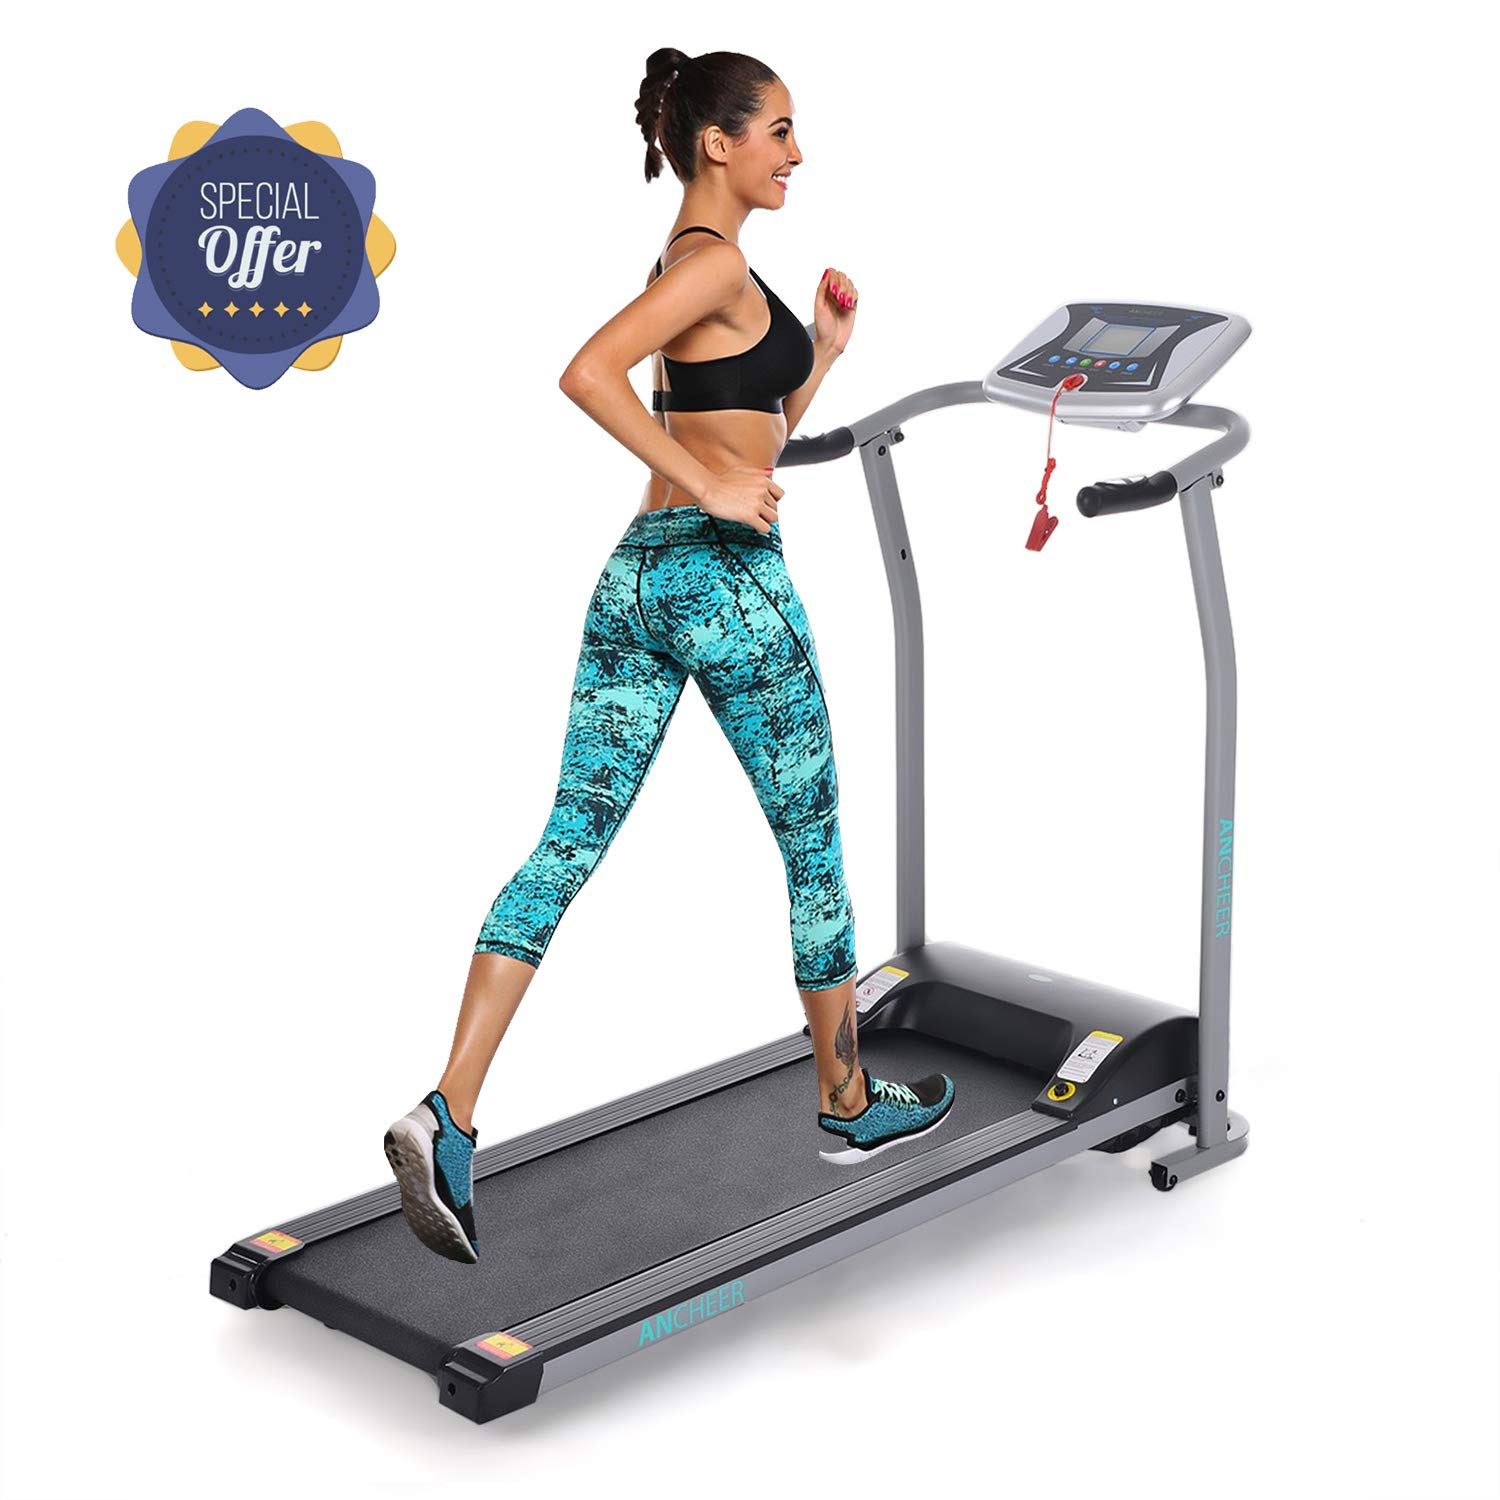 Folding Electric Treadmill Incline Motorized Running Machine Smartphone APP Control for Home Gym Exercise (Z-1.5 HP- Silver-Not with APP Control- Not Incline)